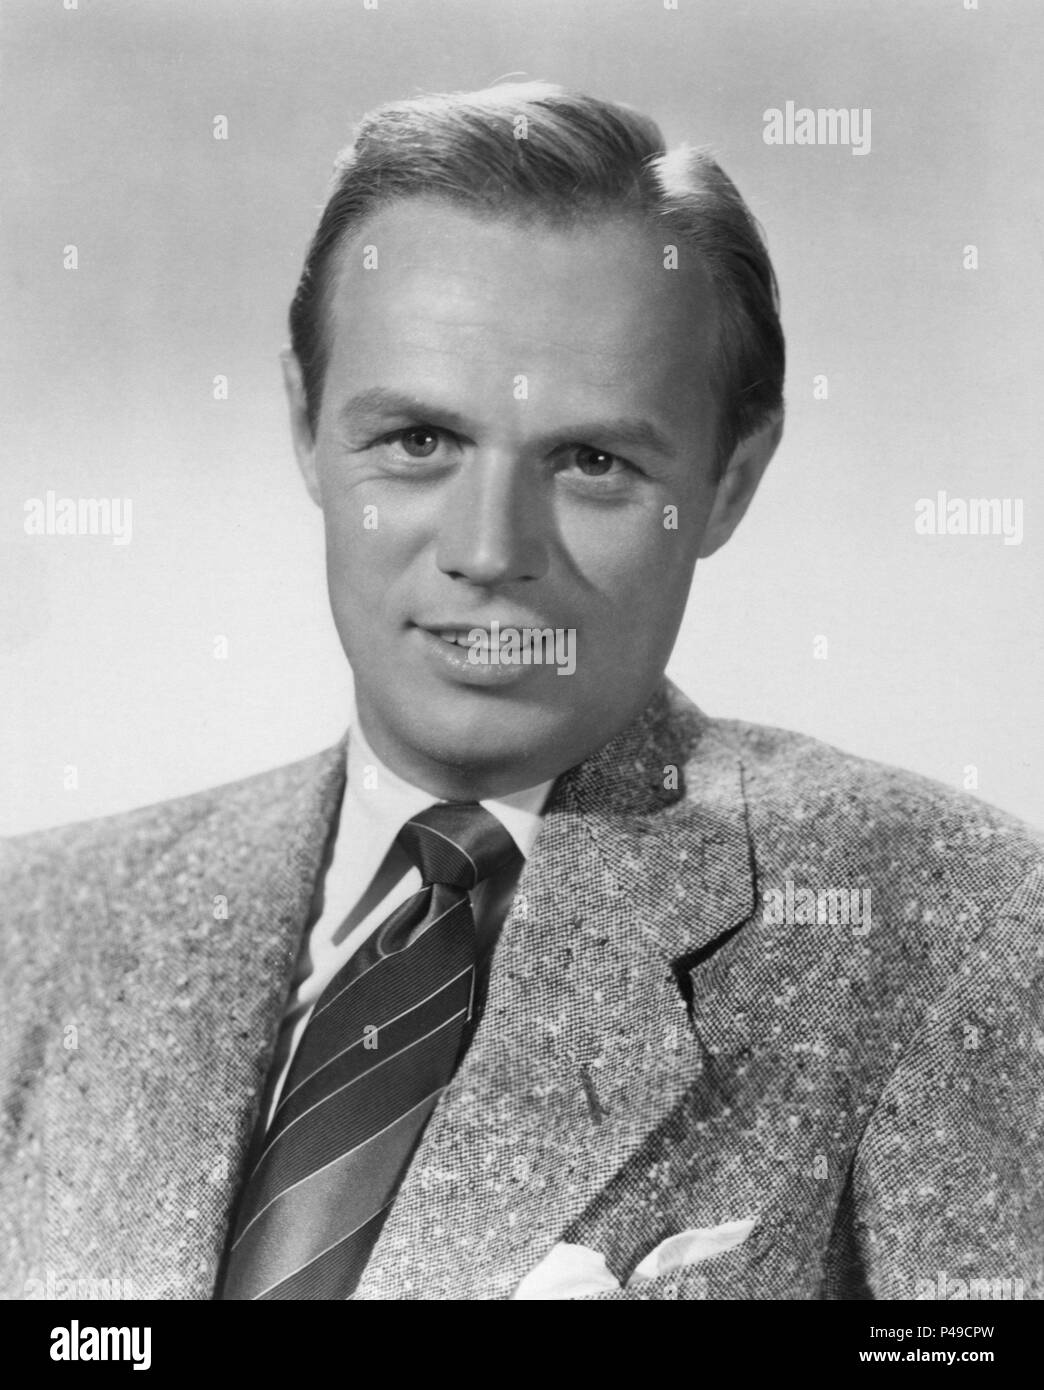 Image result for young richard widmark smiling